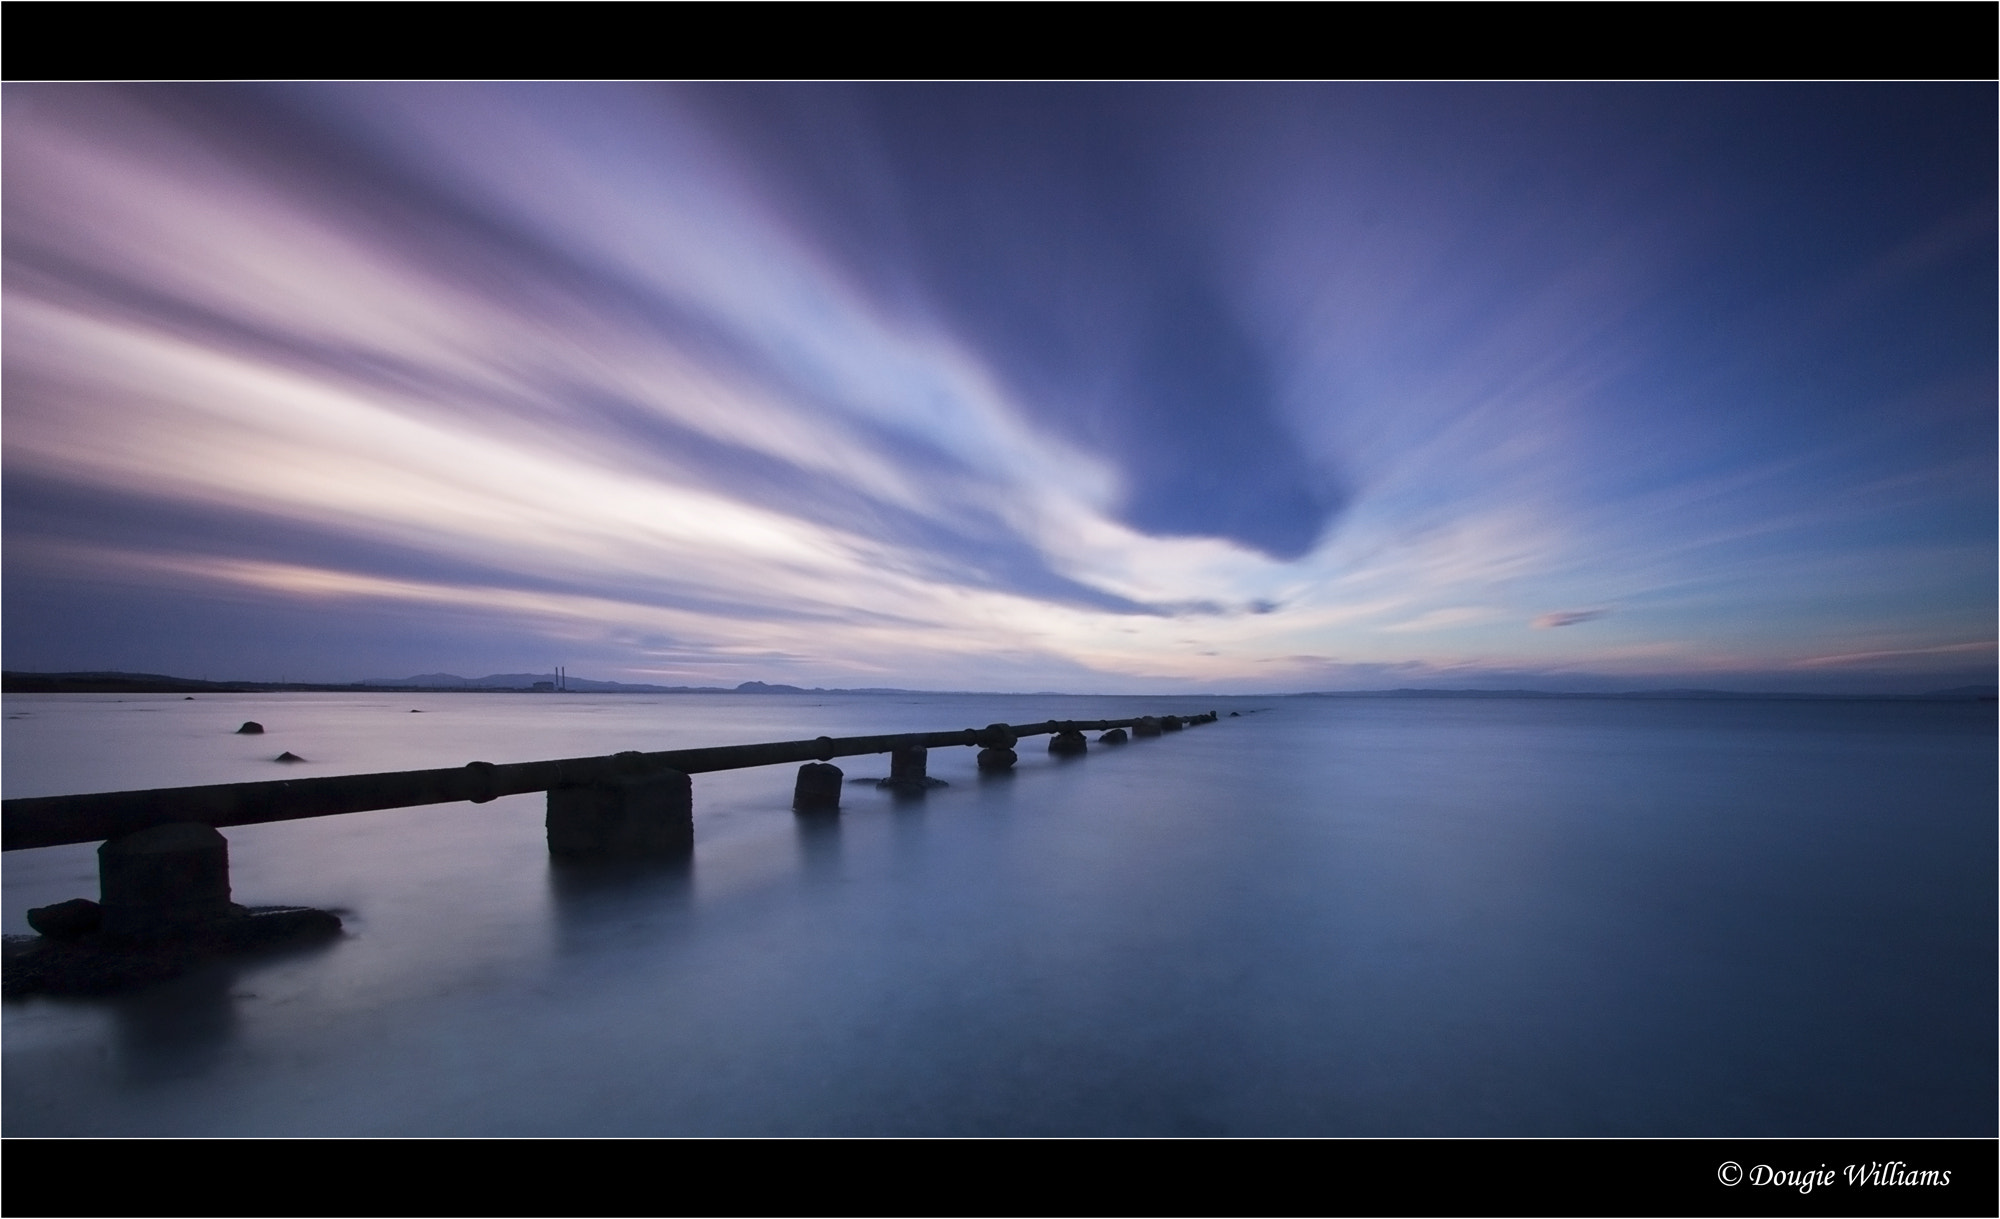 Photograph Longniddry Pipe by Dougie Williams on 500px